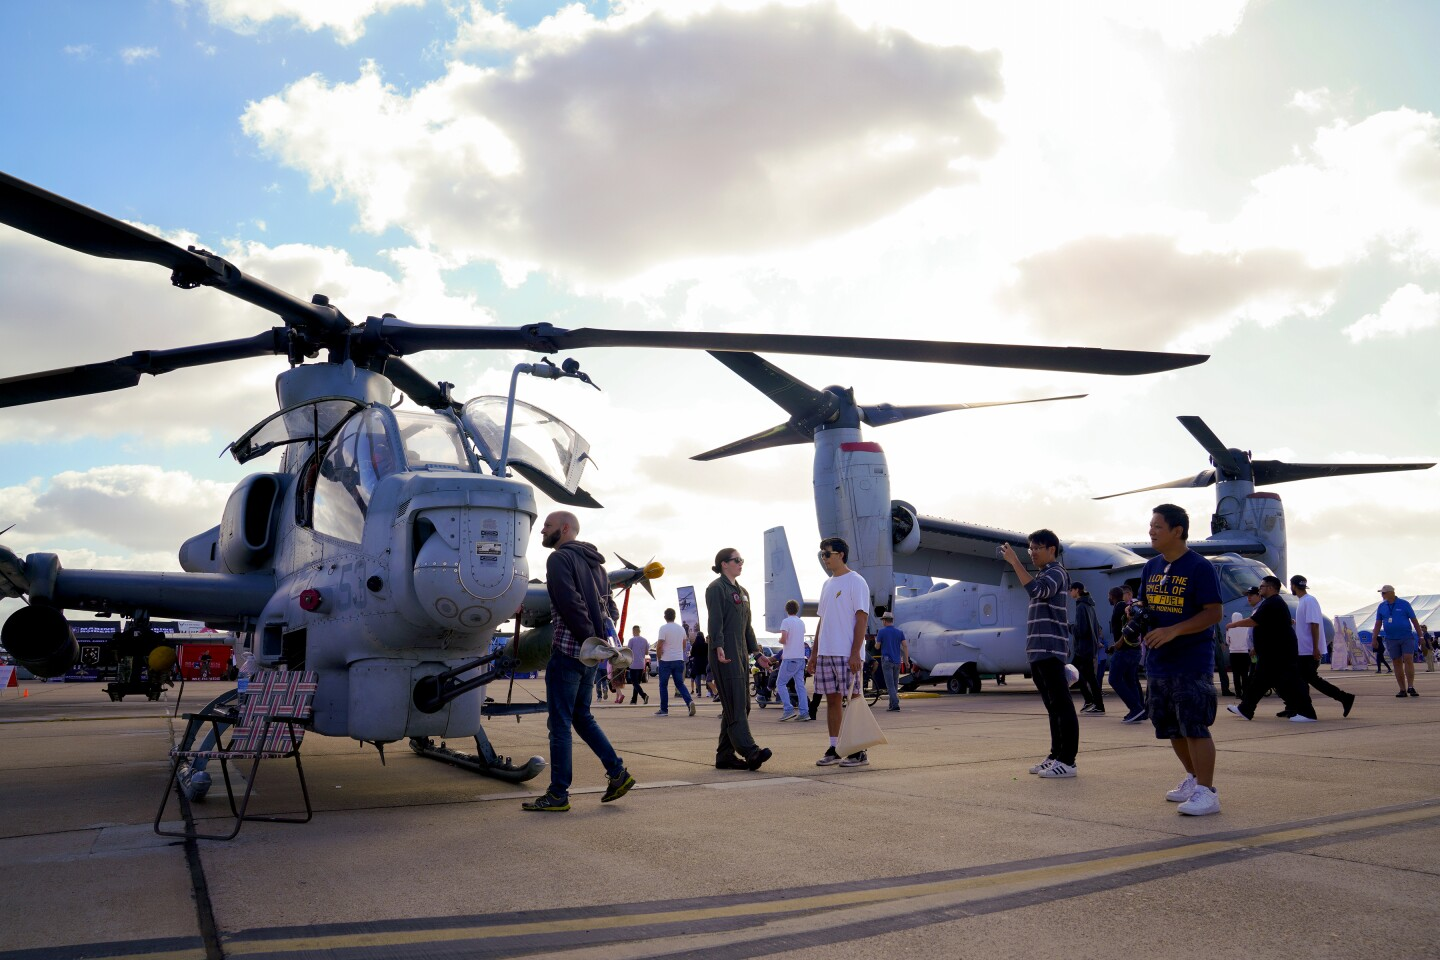 On Sunday at the Miramar Air Show the public looked over the Marines AH-1Z Super Cobra/Viper and an MV-22 Osprey.